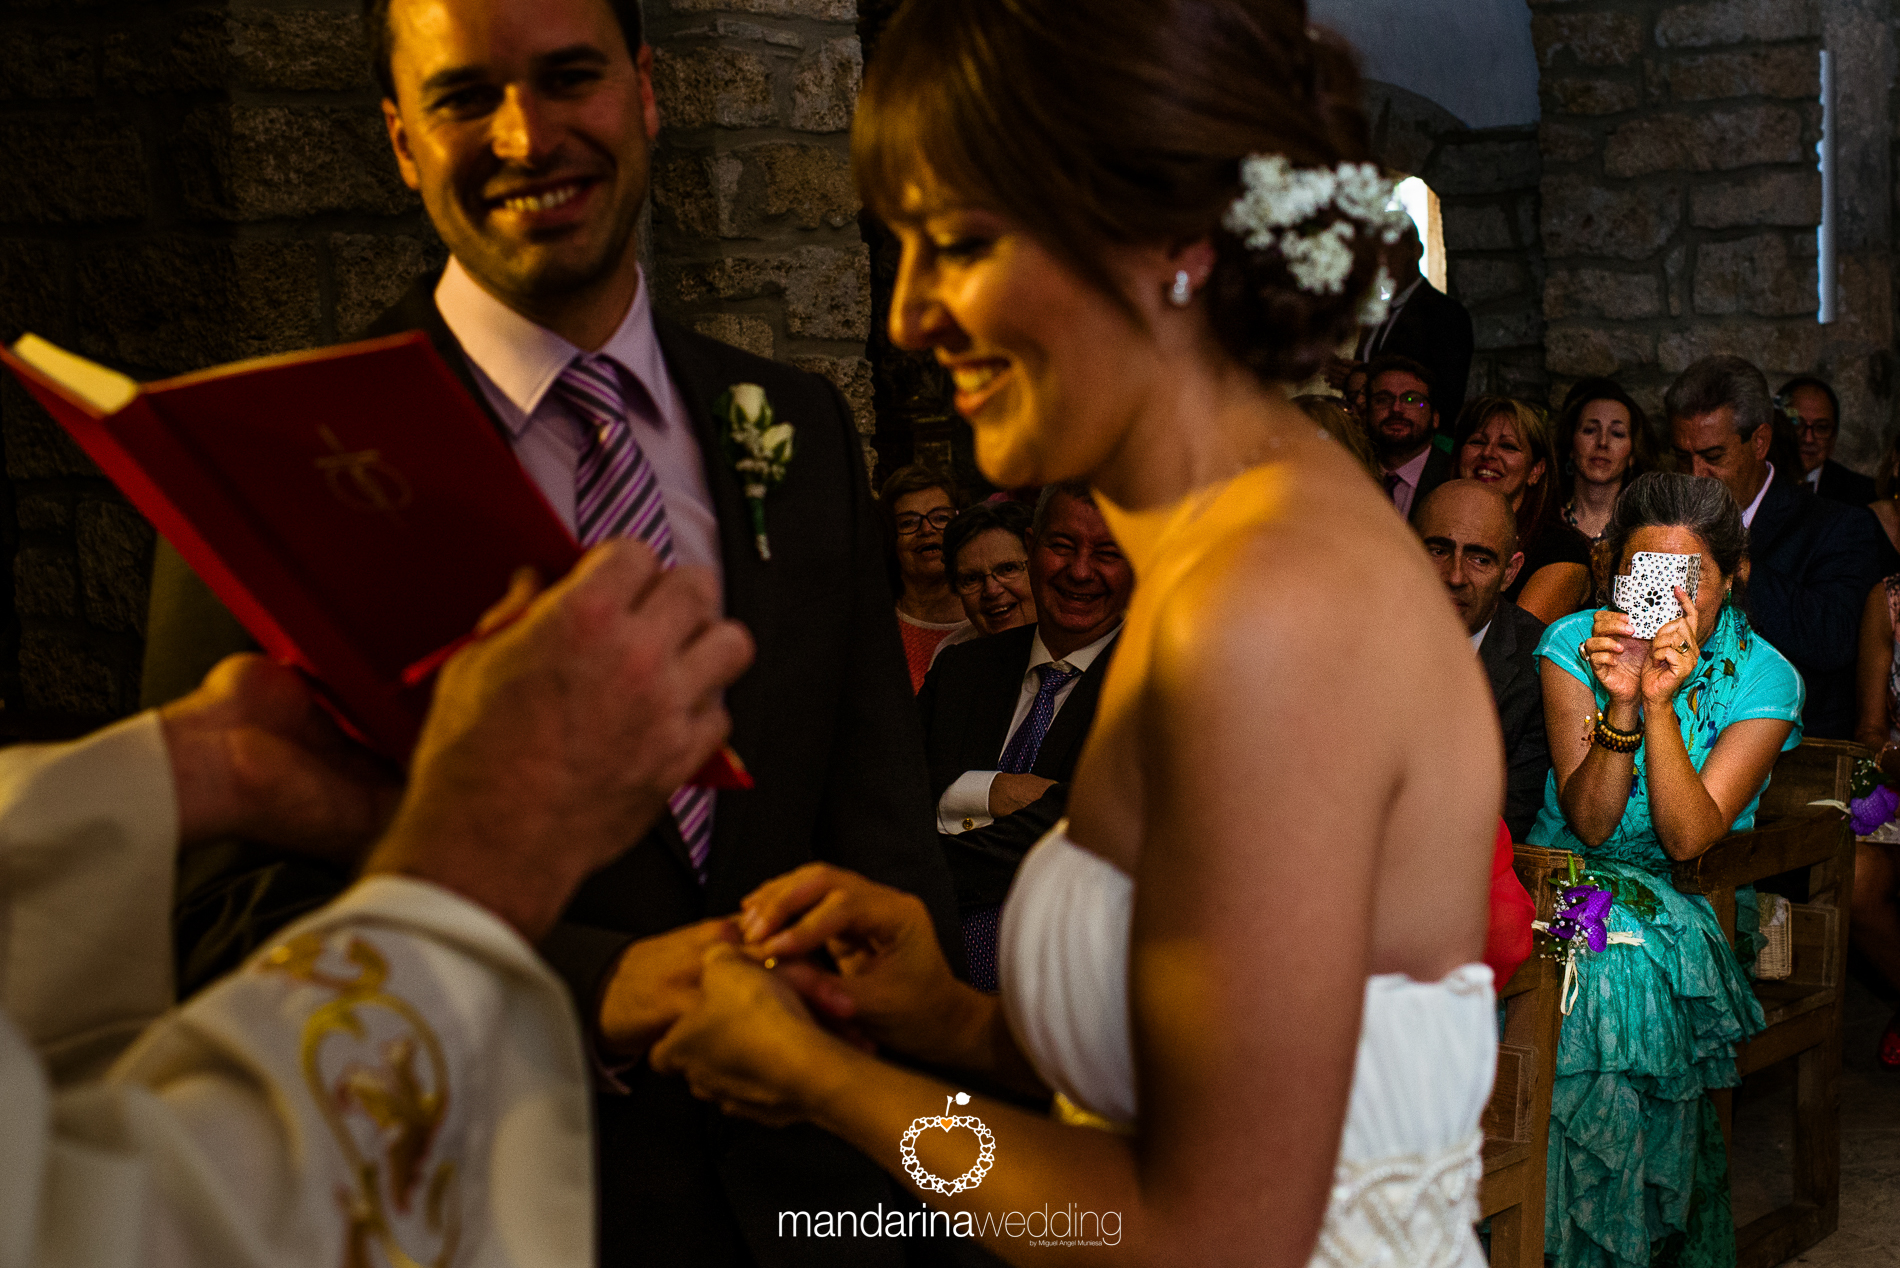 mandarina wedding_24